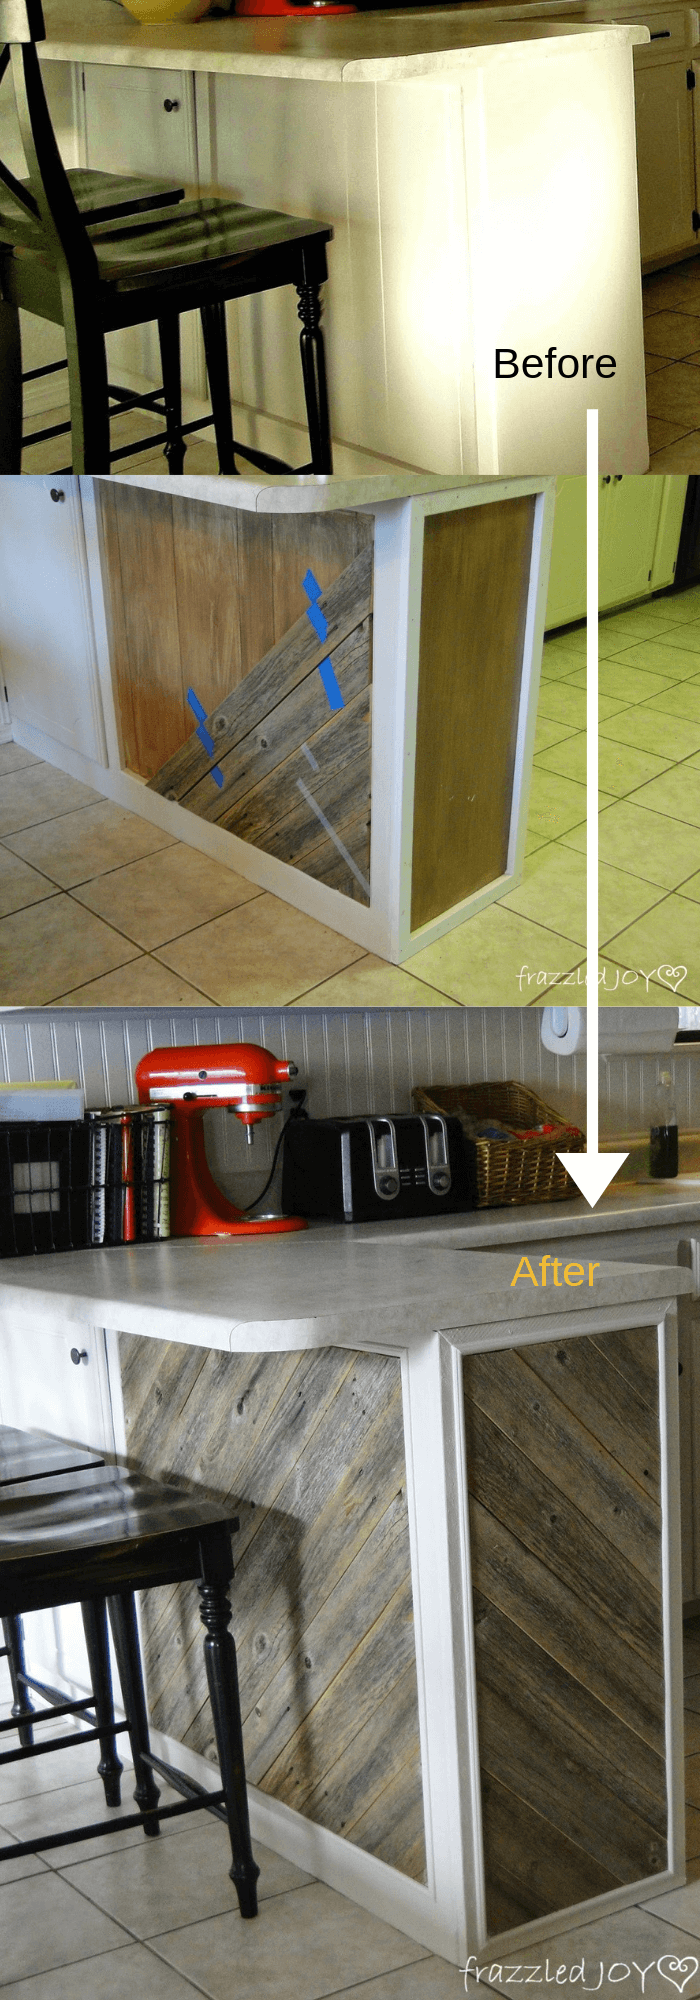 Kitchen Decor Projects With Reclaimed Wood Diagonal Planked Reclaimed Wood Kitchen Island